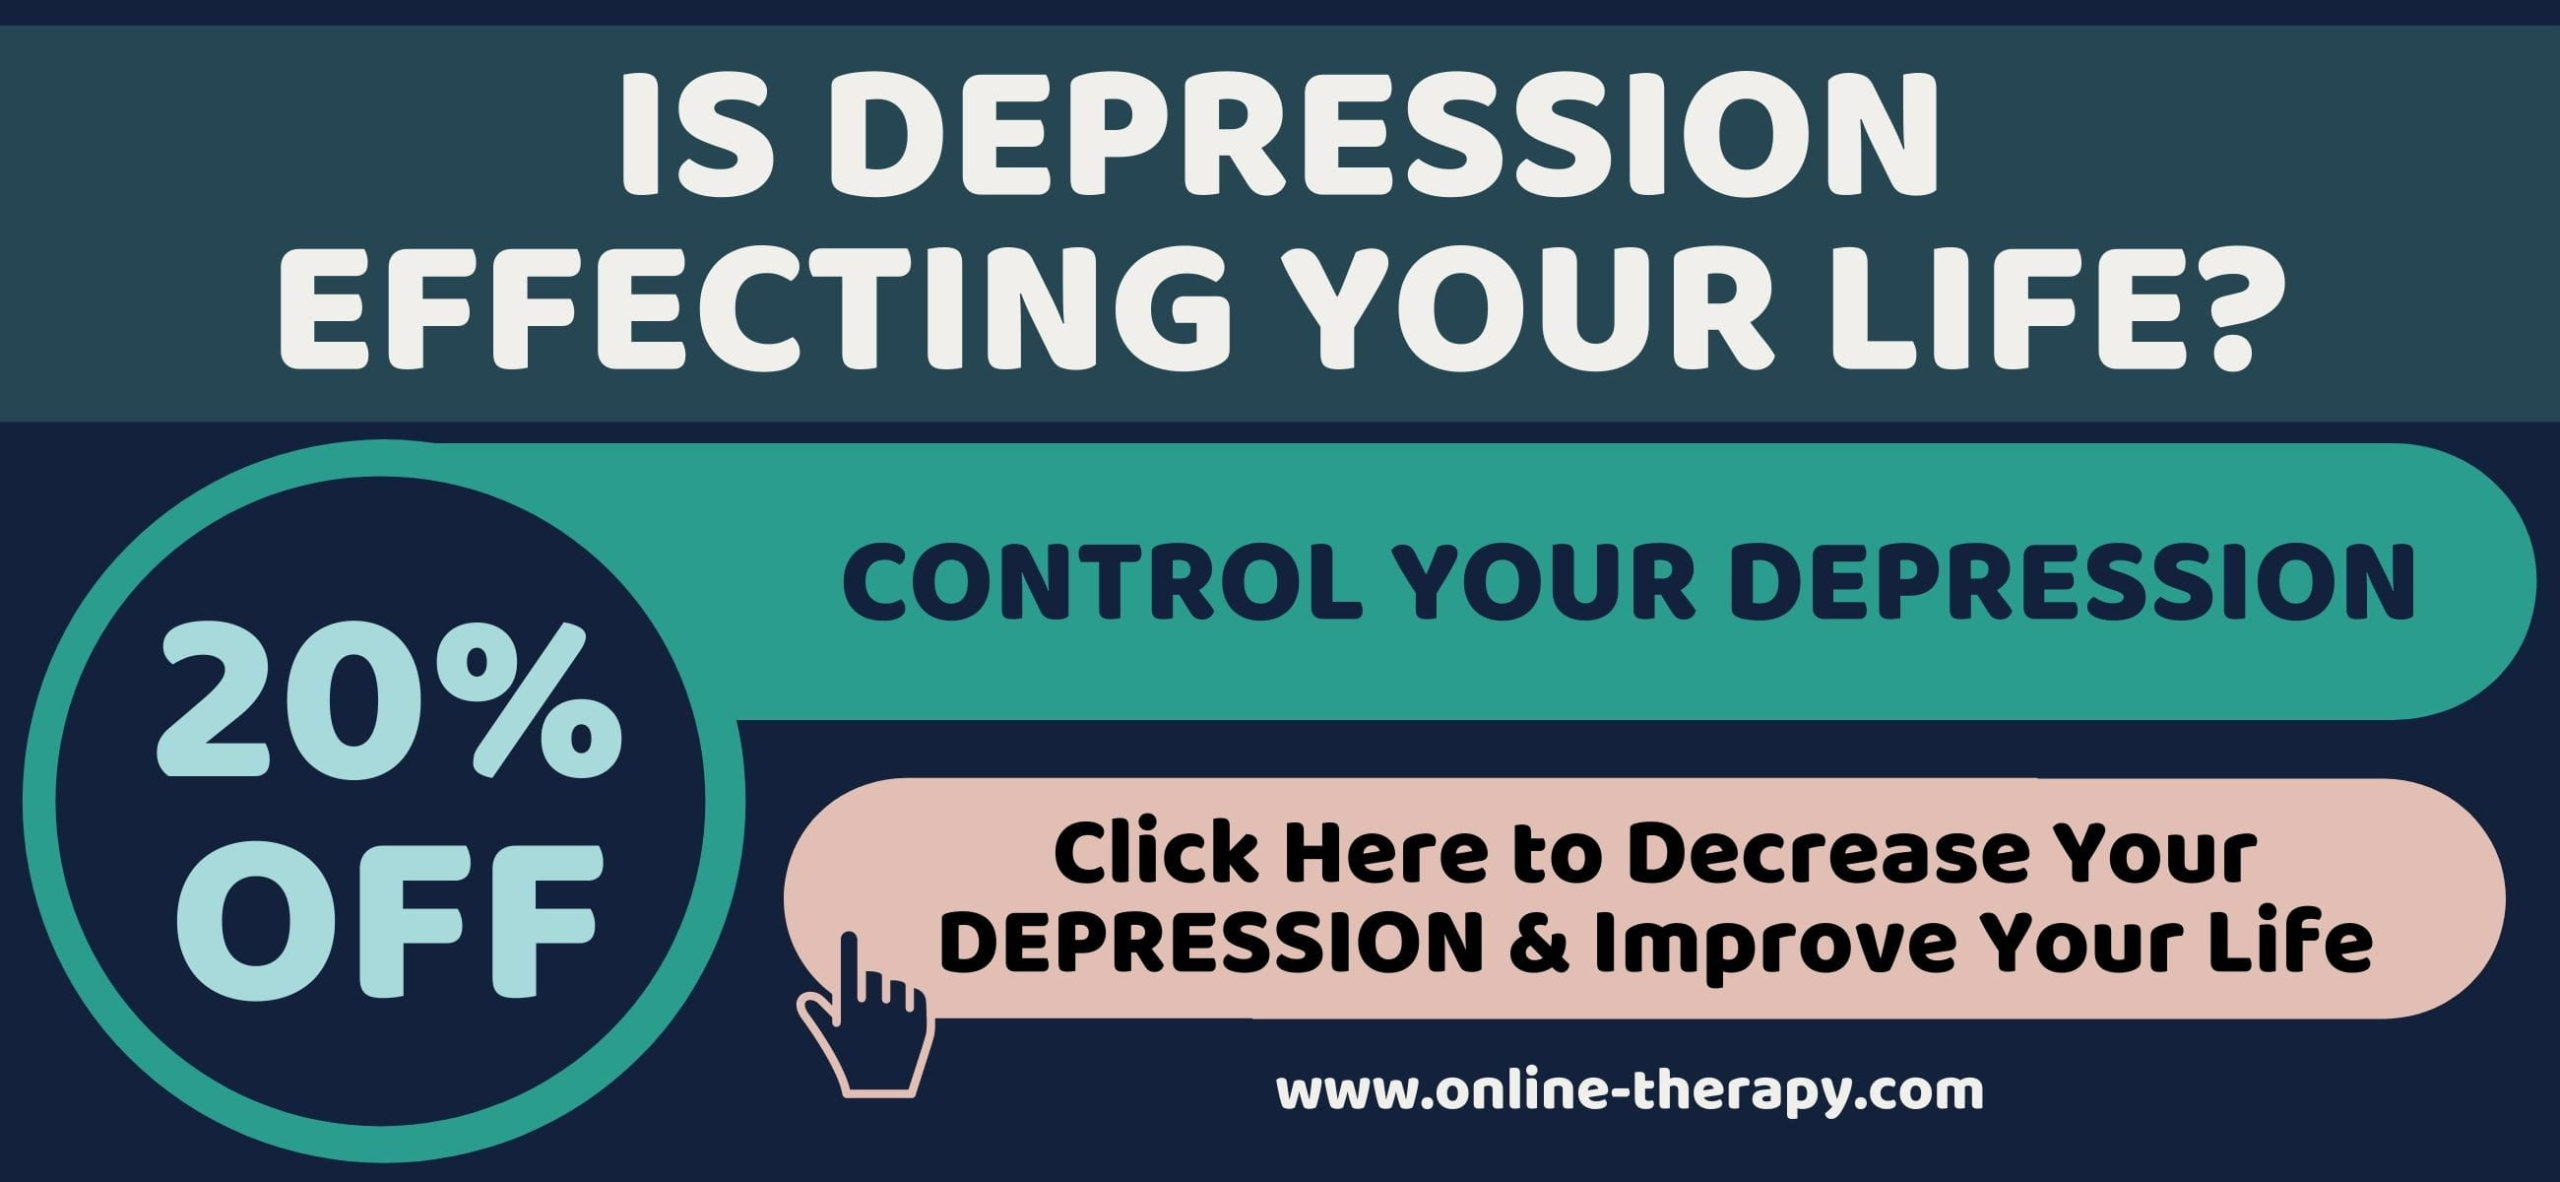 IS DEPRESSION EFFECTING YOUR LIFE (Call to expert online)